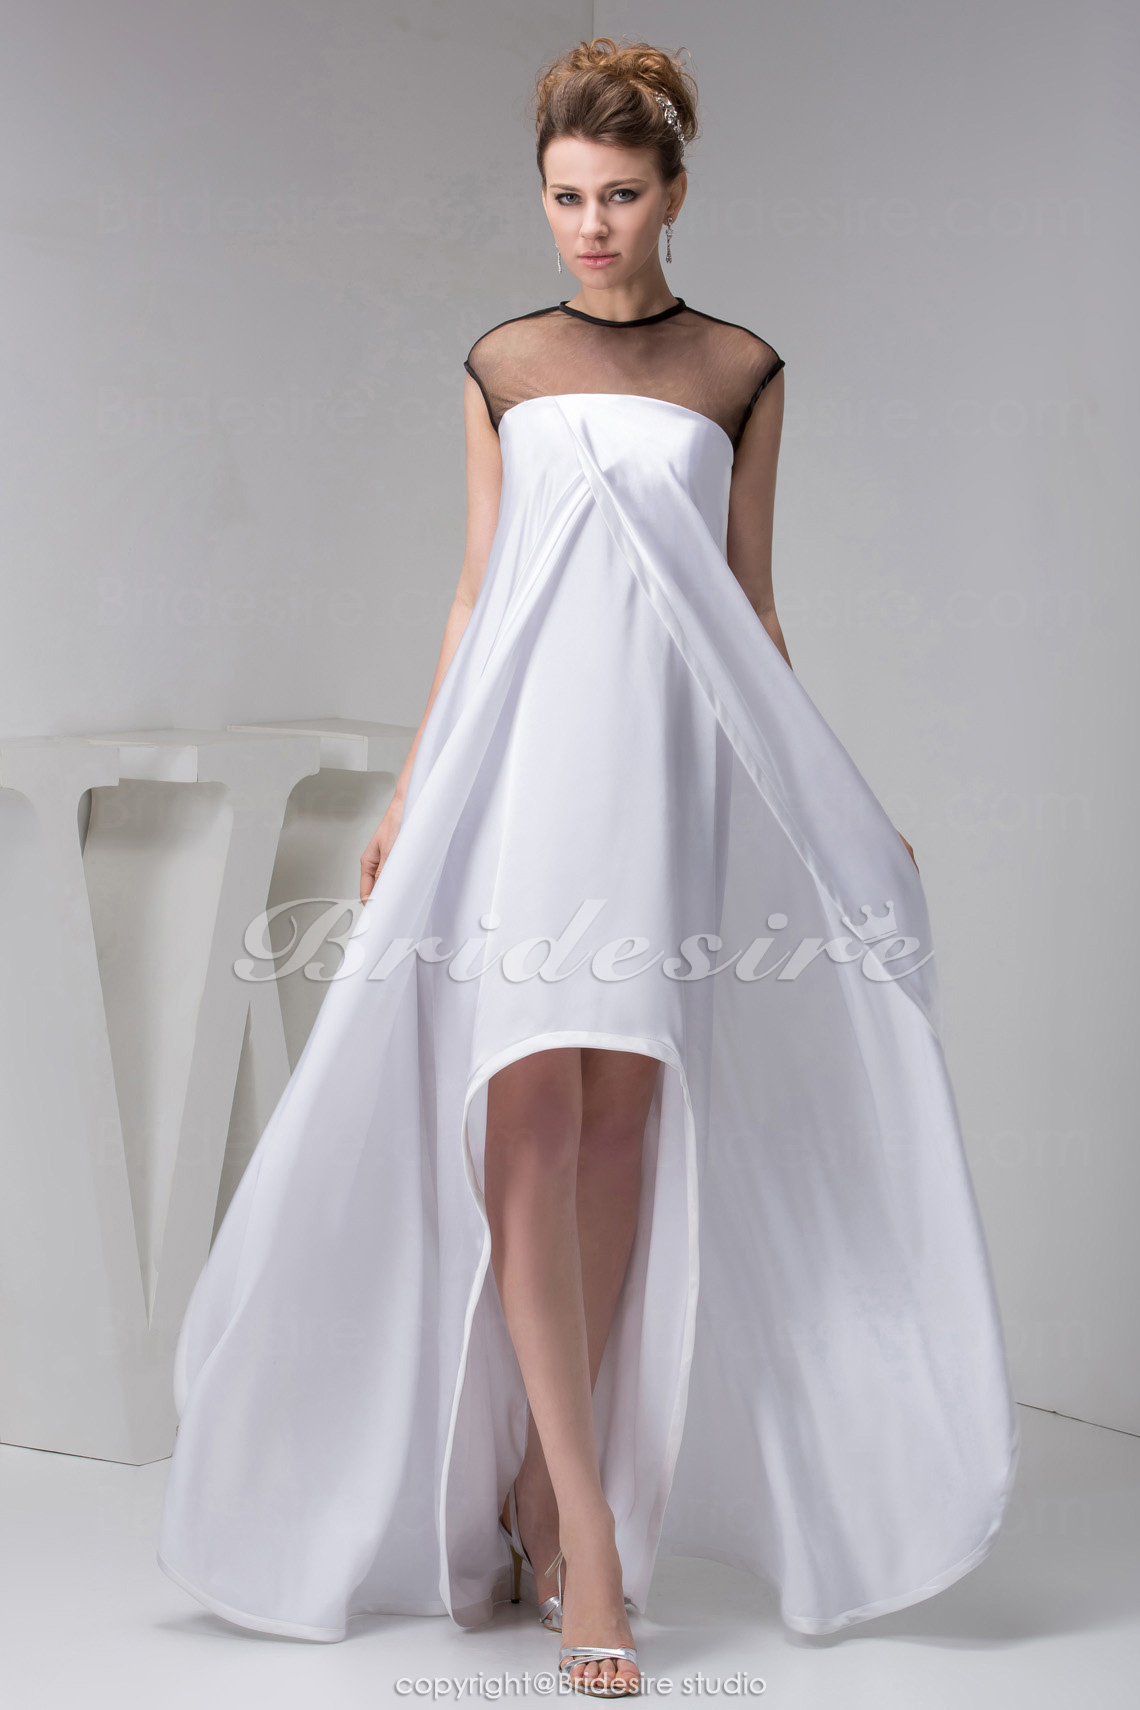 A-line Scoop Floor-length Sleeveless Satin Tulle Dress